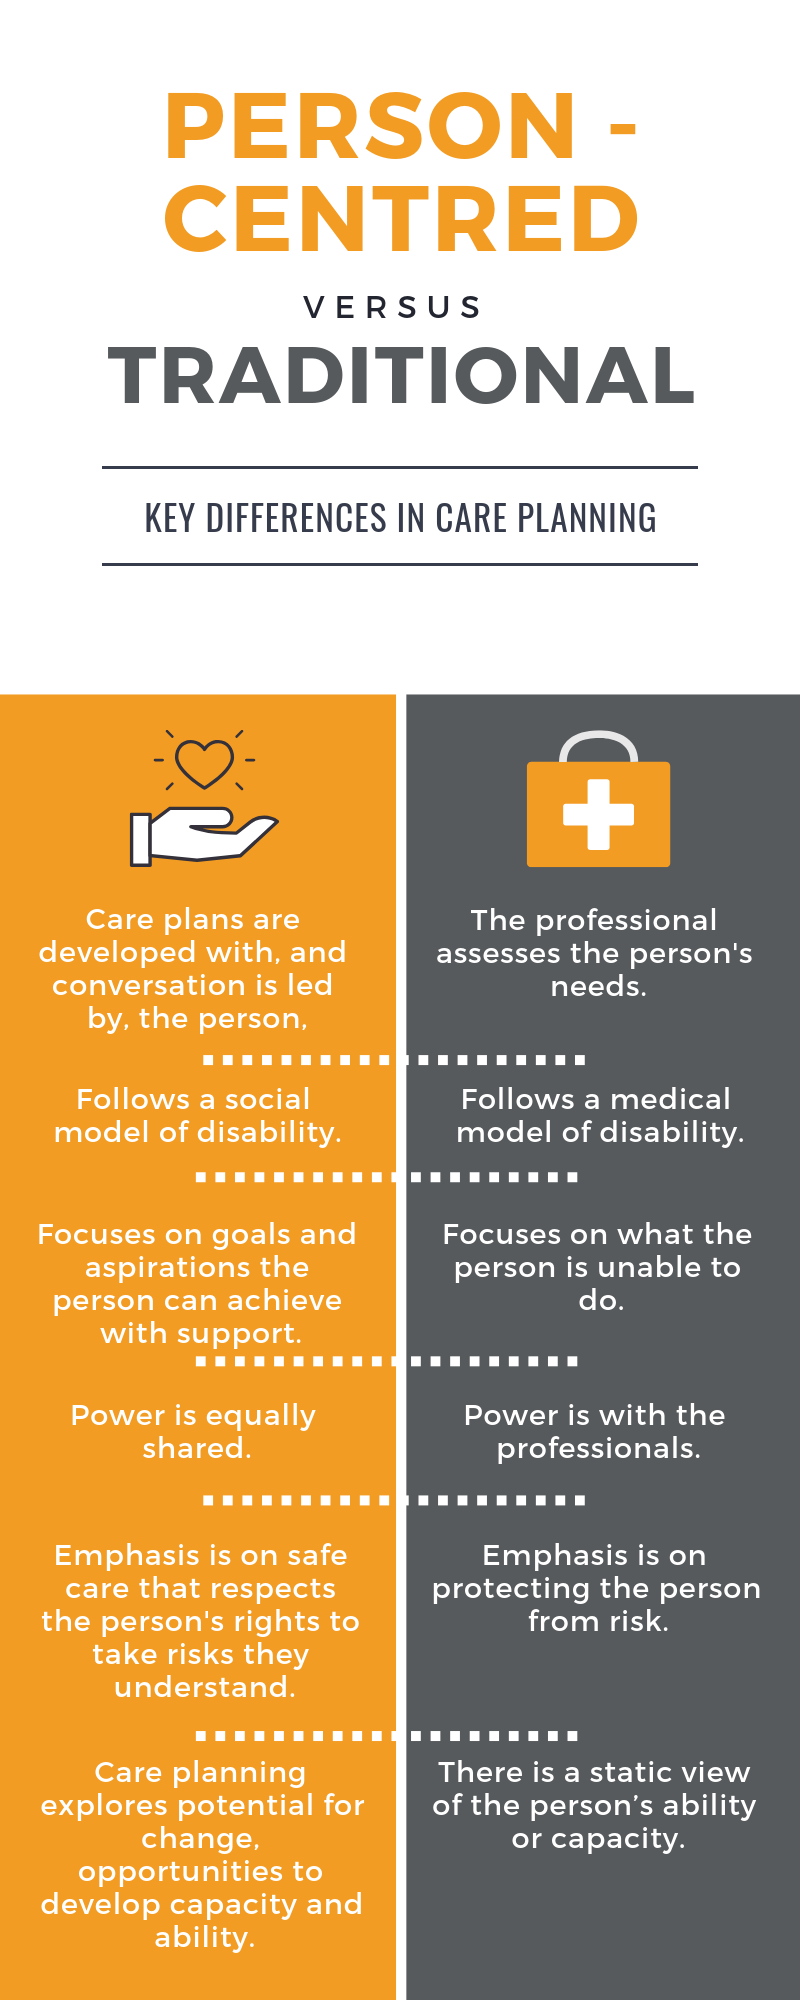 key differences in care planning: person-centred versus traditional approach